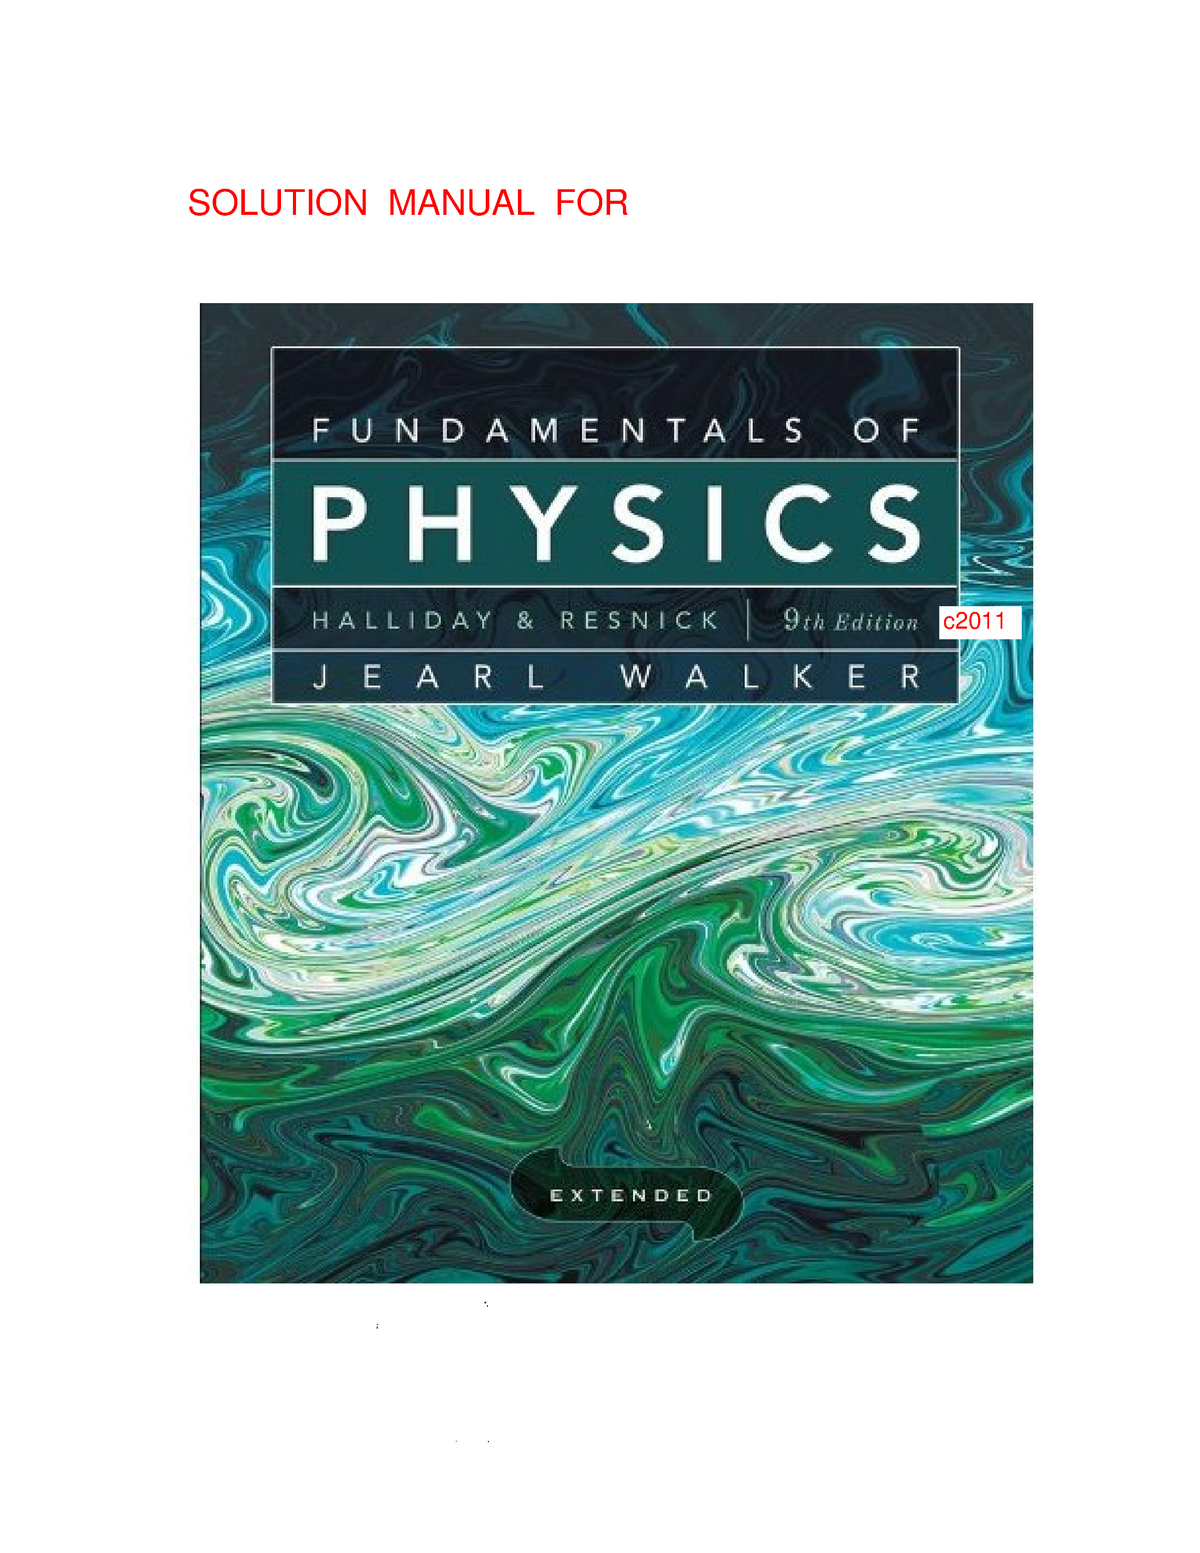 Fundamentals of Physics Extended - Halliday & Resnick 9th edition